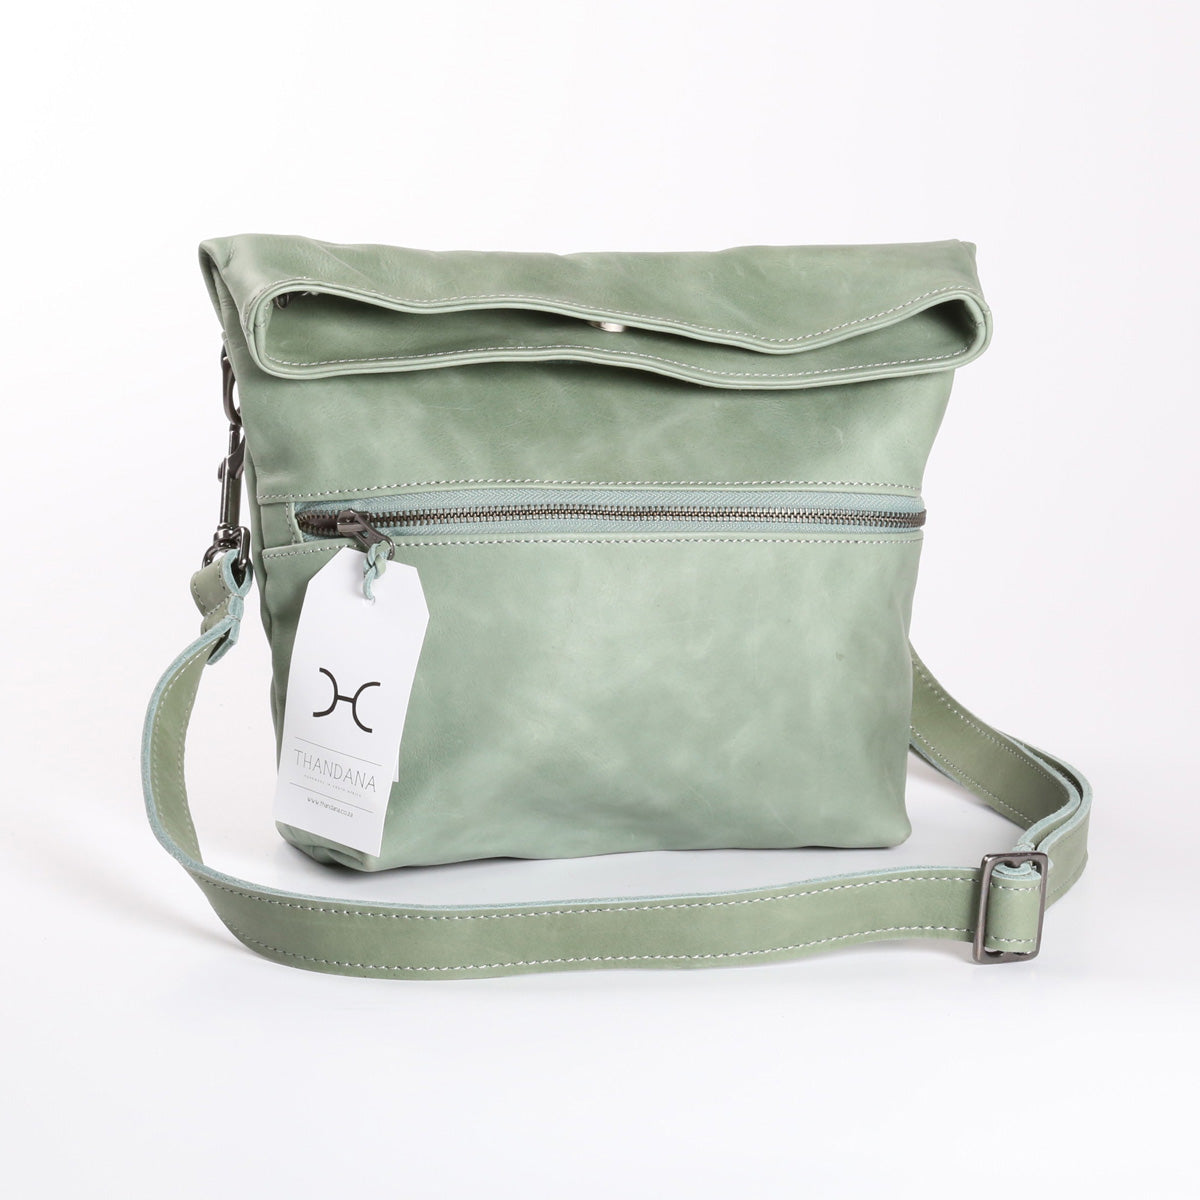 Thandana Erica Handbag - Green - Zufrique Boutique